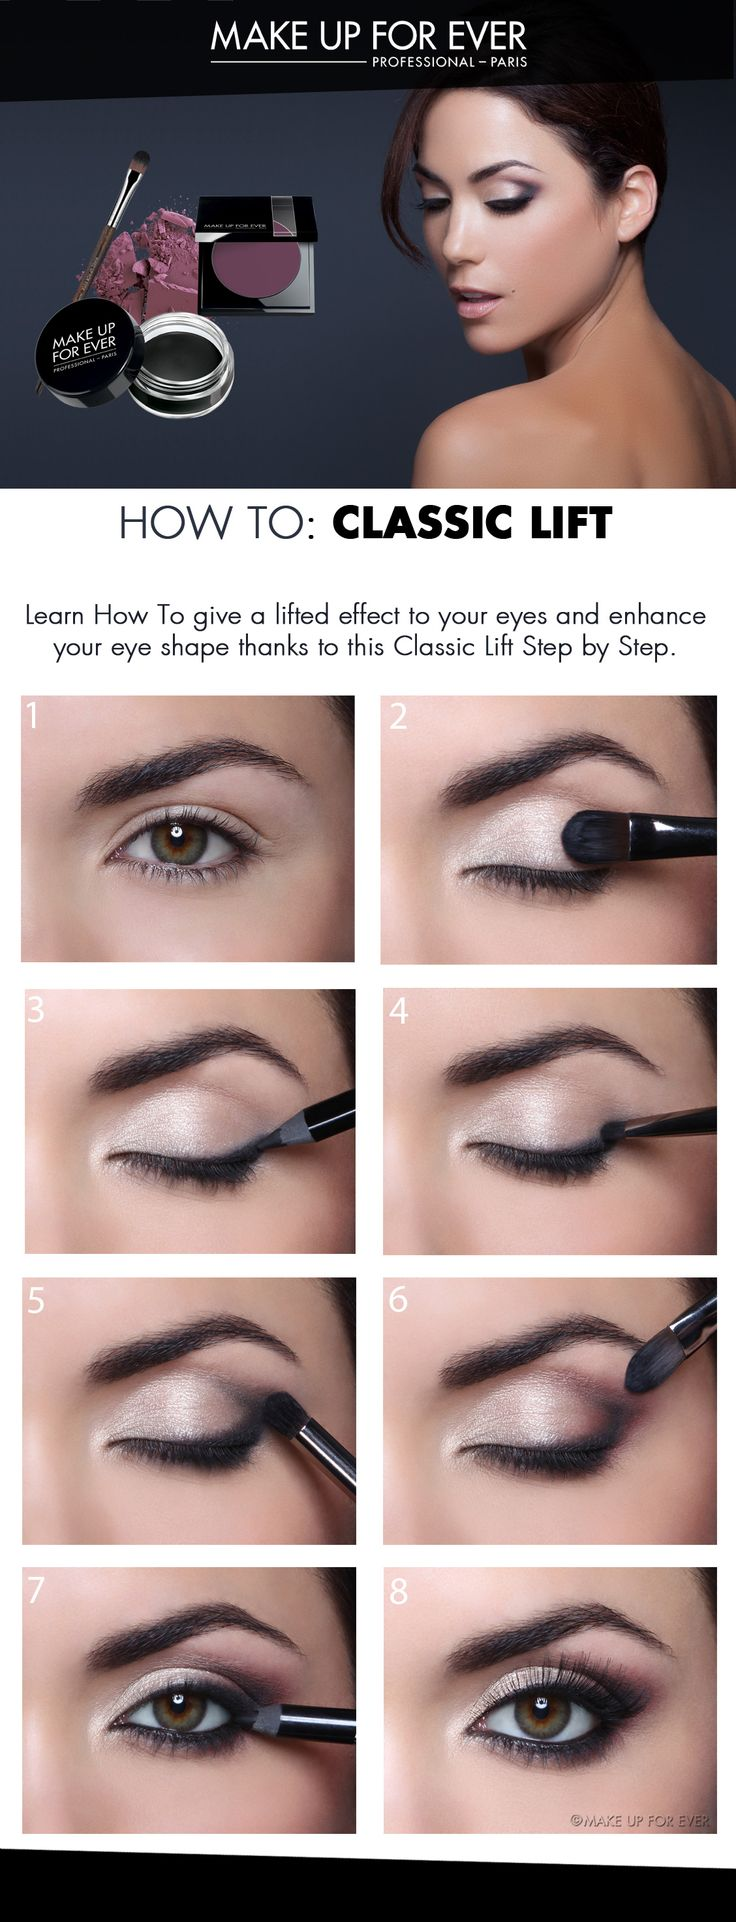 Beautiful, classic eye lift makeup.